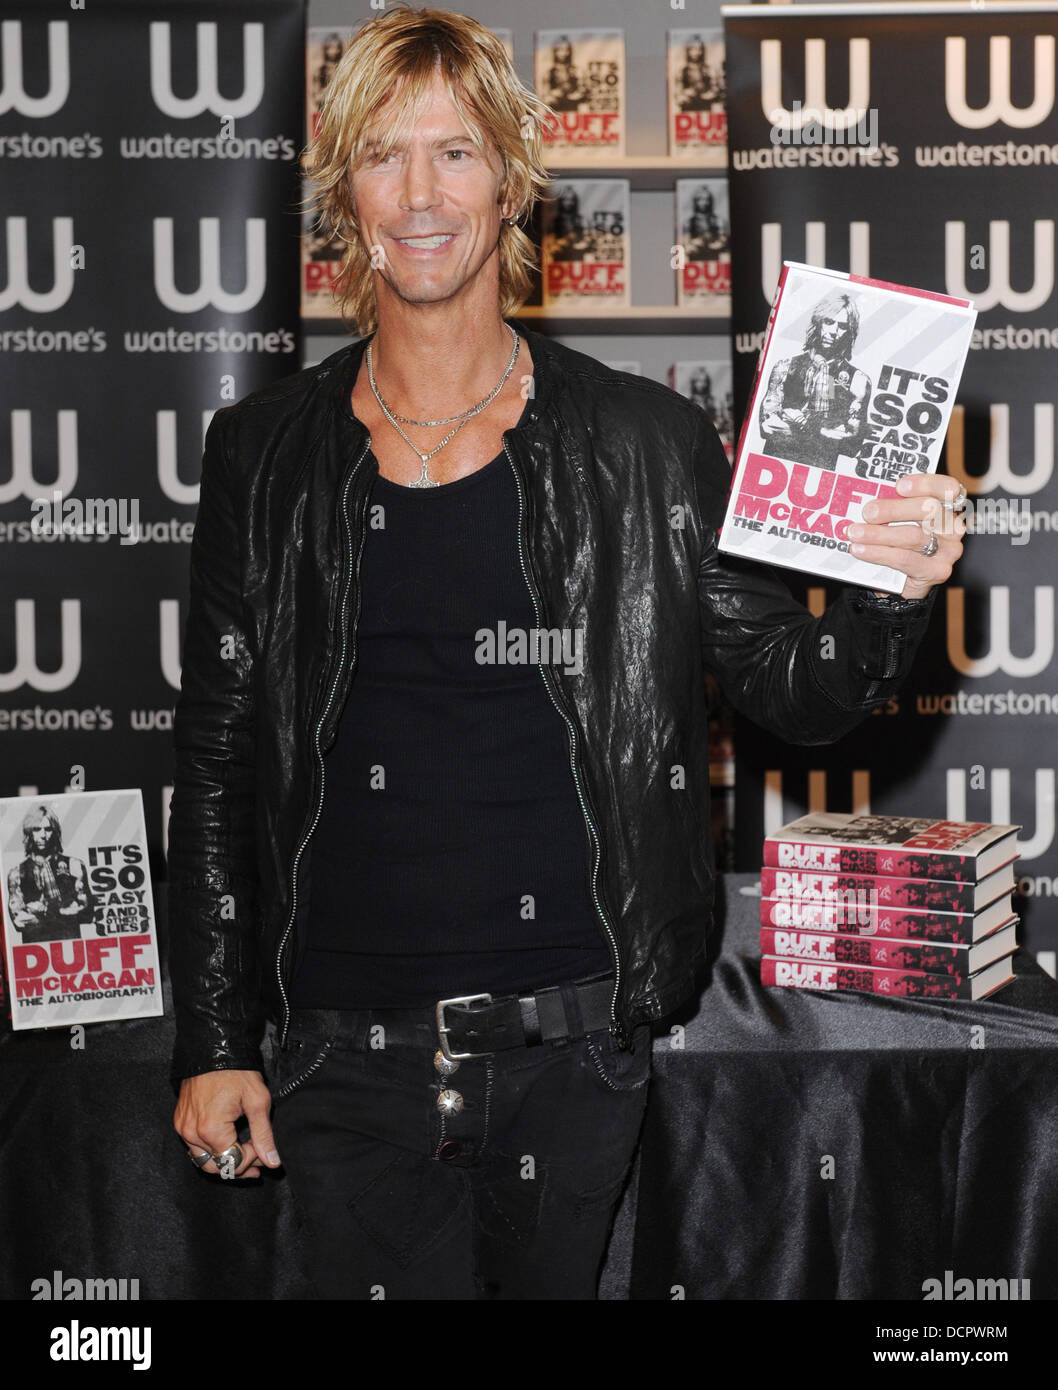 Duff McKagan signs copies of his autobiography 'It's So Easy (And Other Lies)'  at Waterstone's Oxford Street London, England - 09.11.11